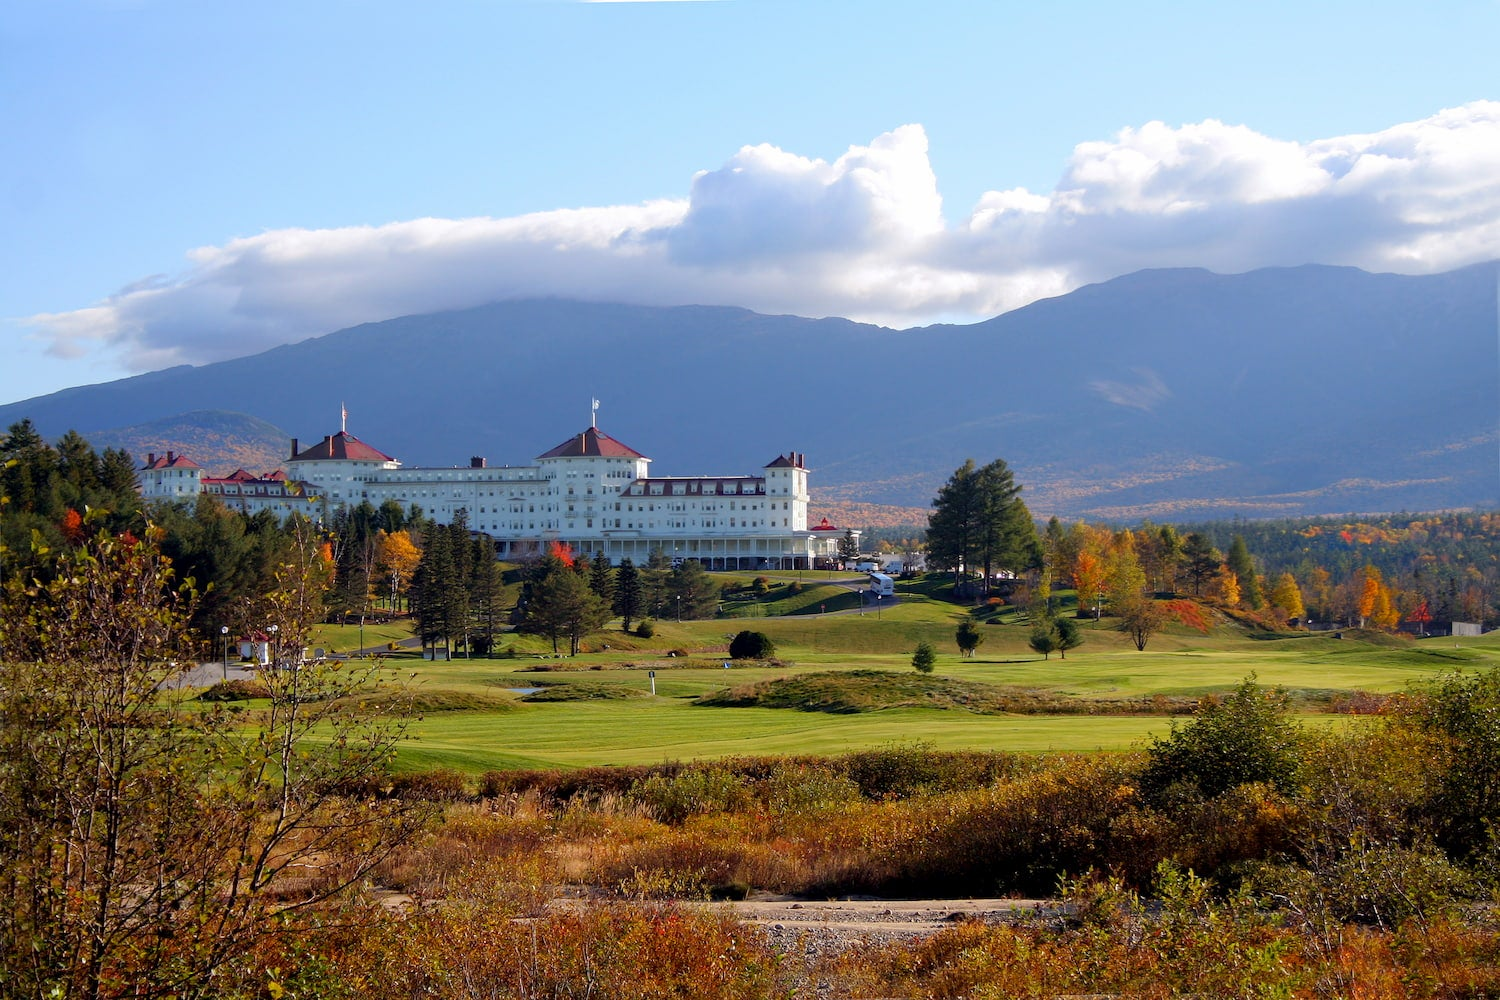 Mount Washington Hotel & Resort in Bretton Woods, New Hampshire